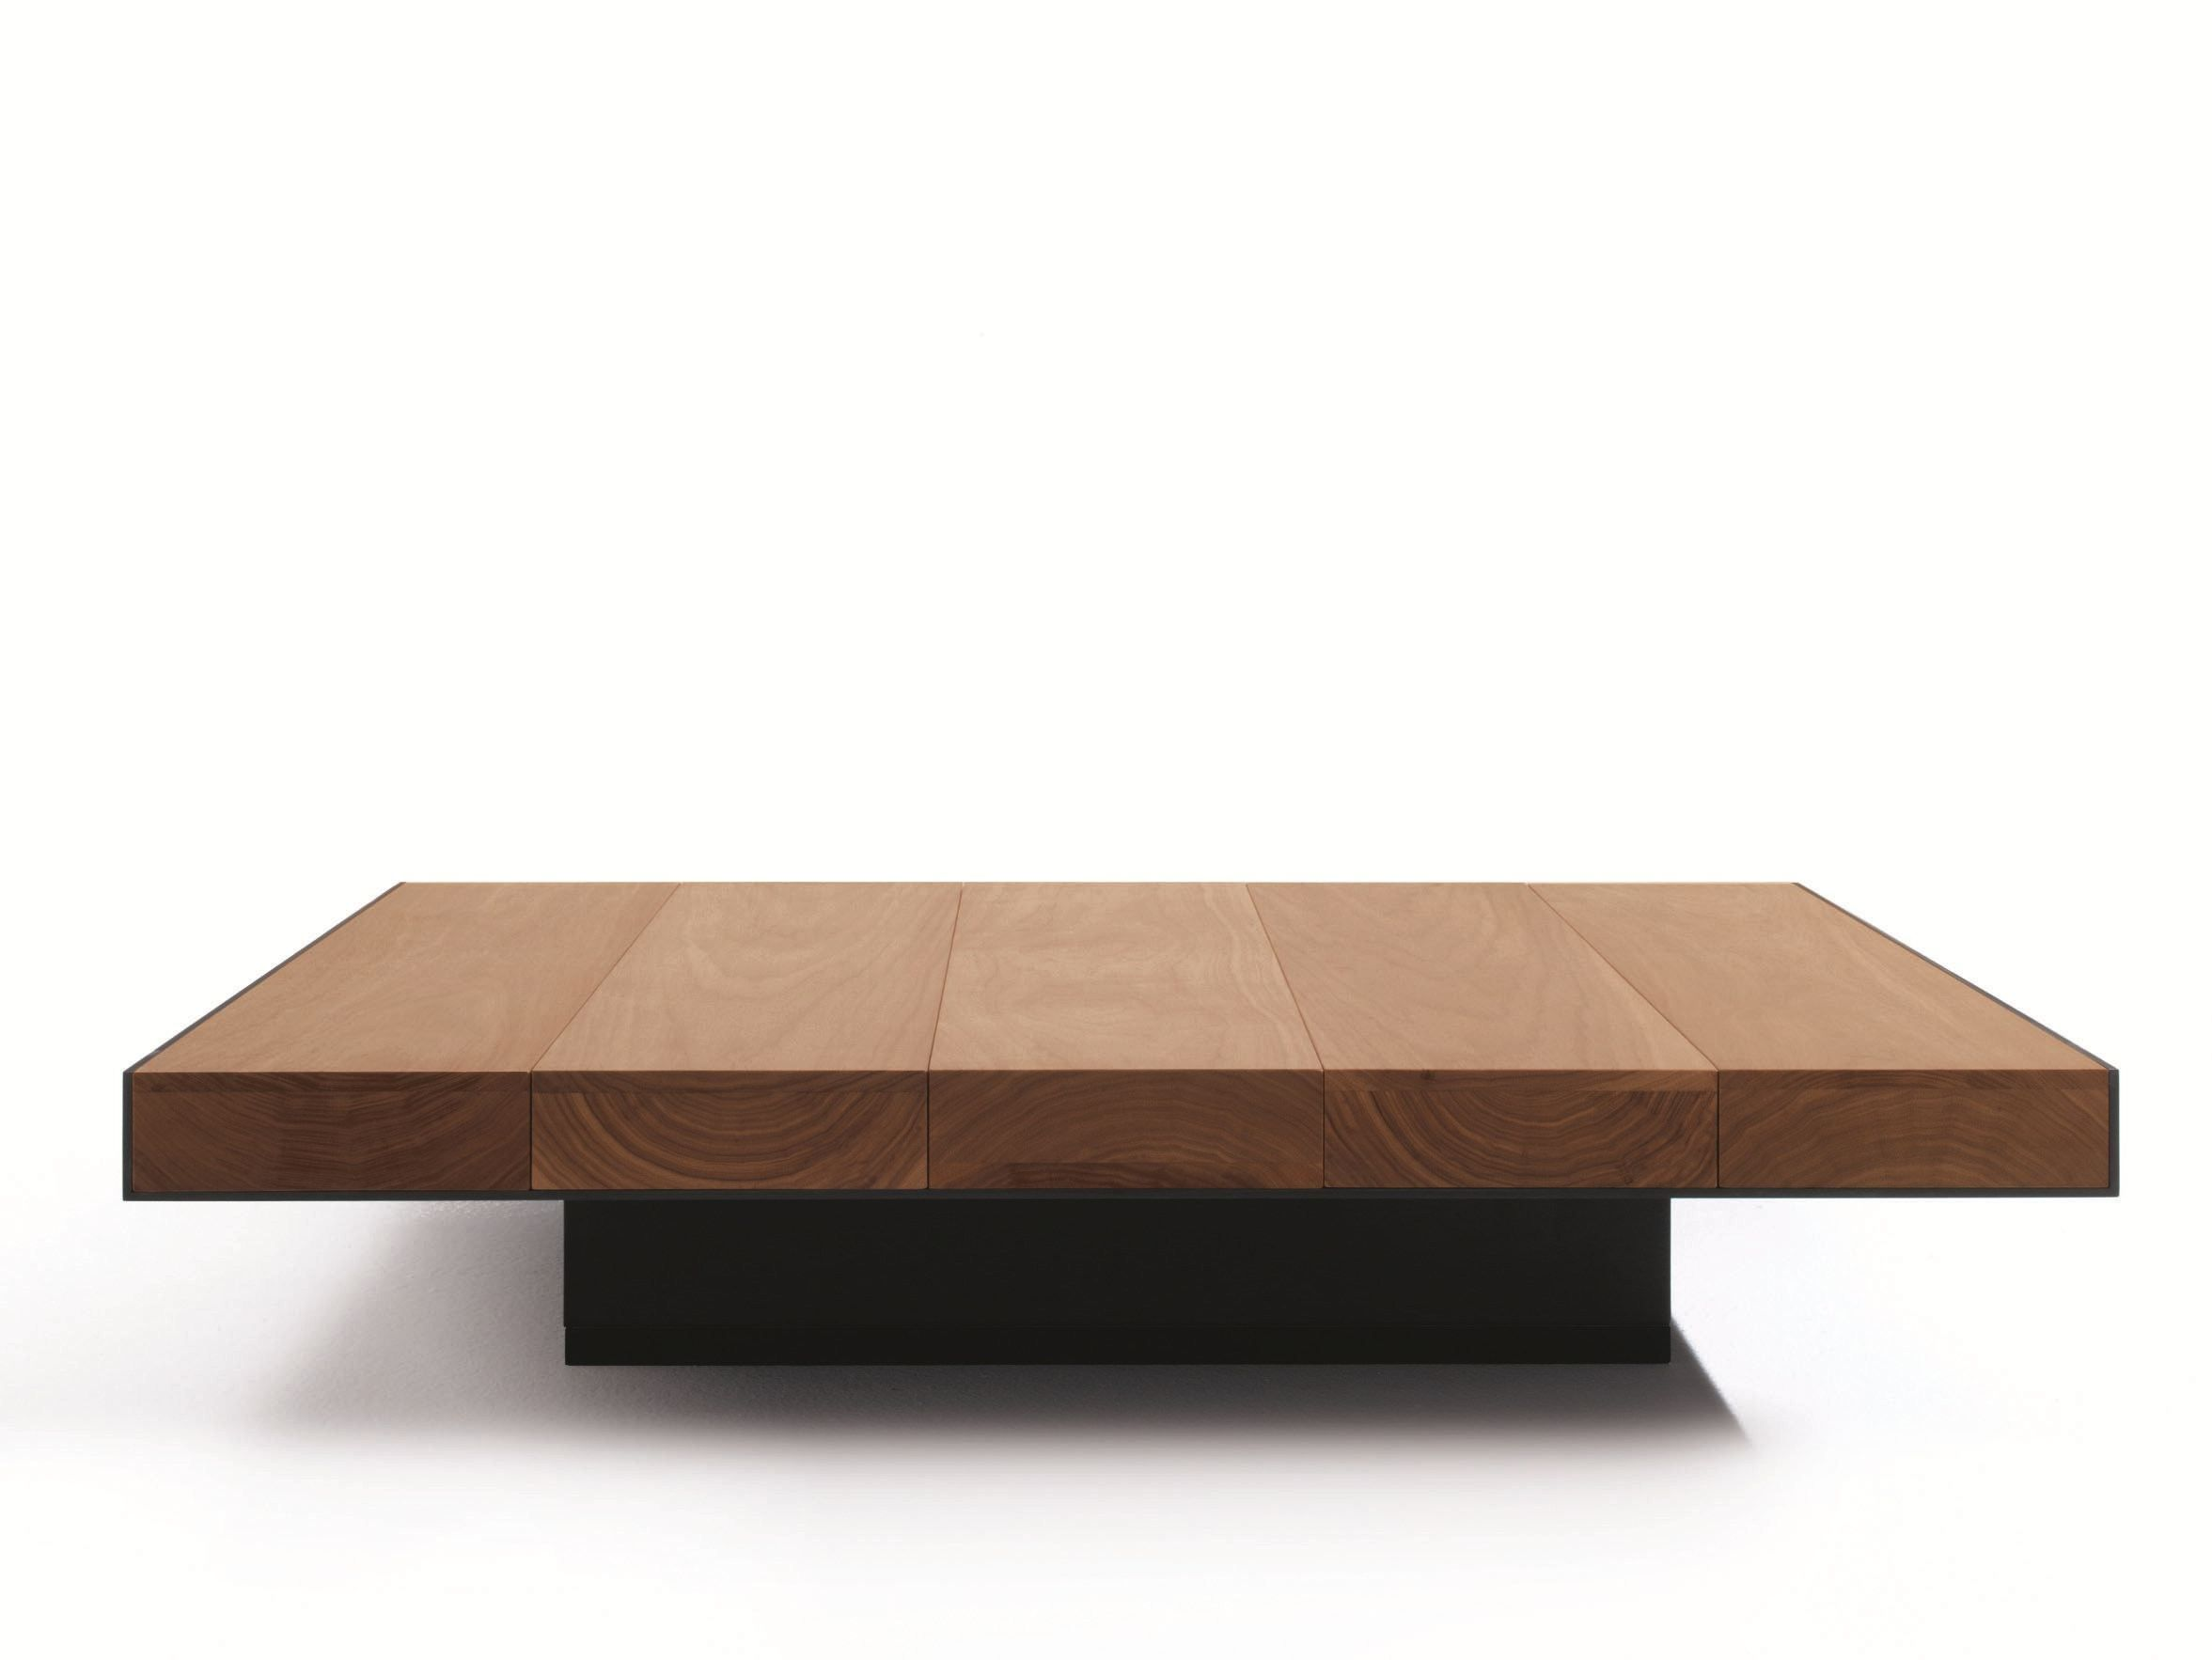 Couchtisch Cube Square Low Square Solid Wood Coffee Table Deck By Lema Design